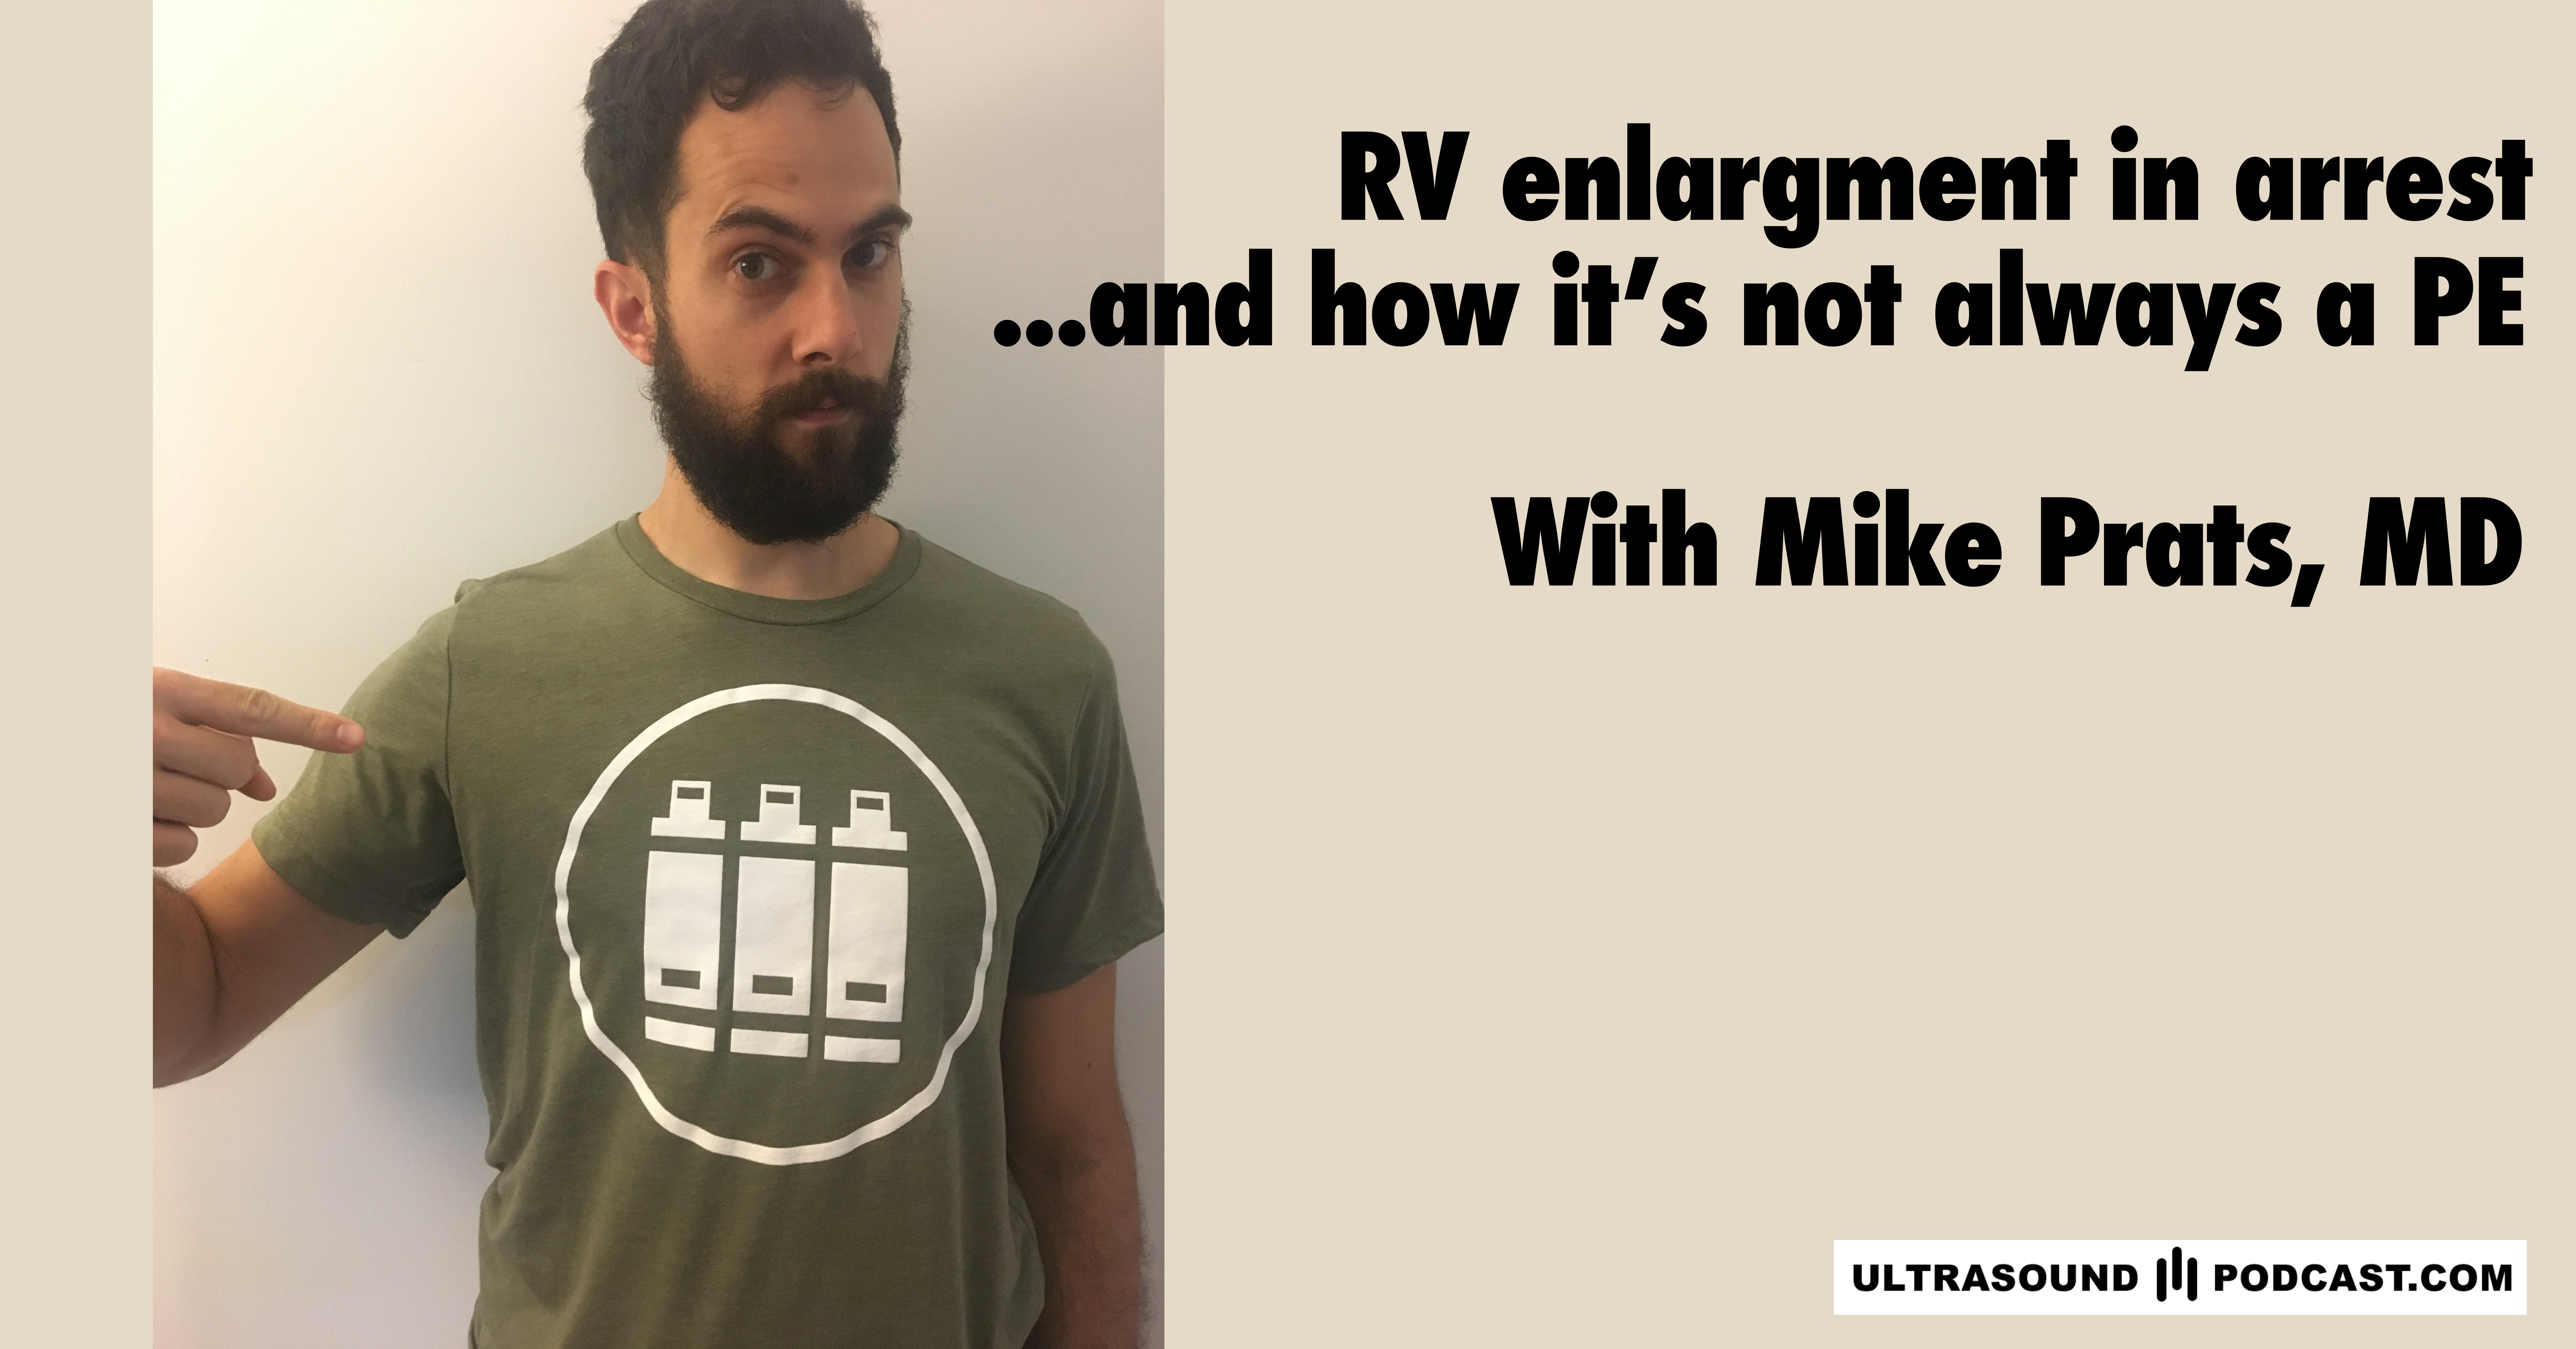 RV enlargement in arrest, and how it's not always a PE